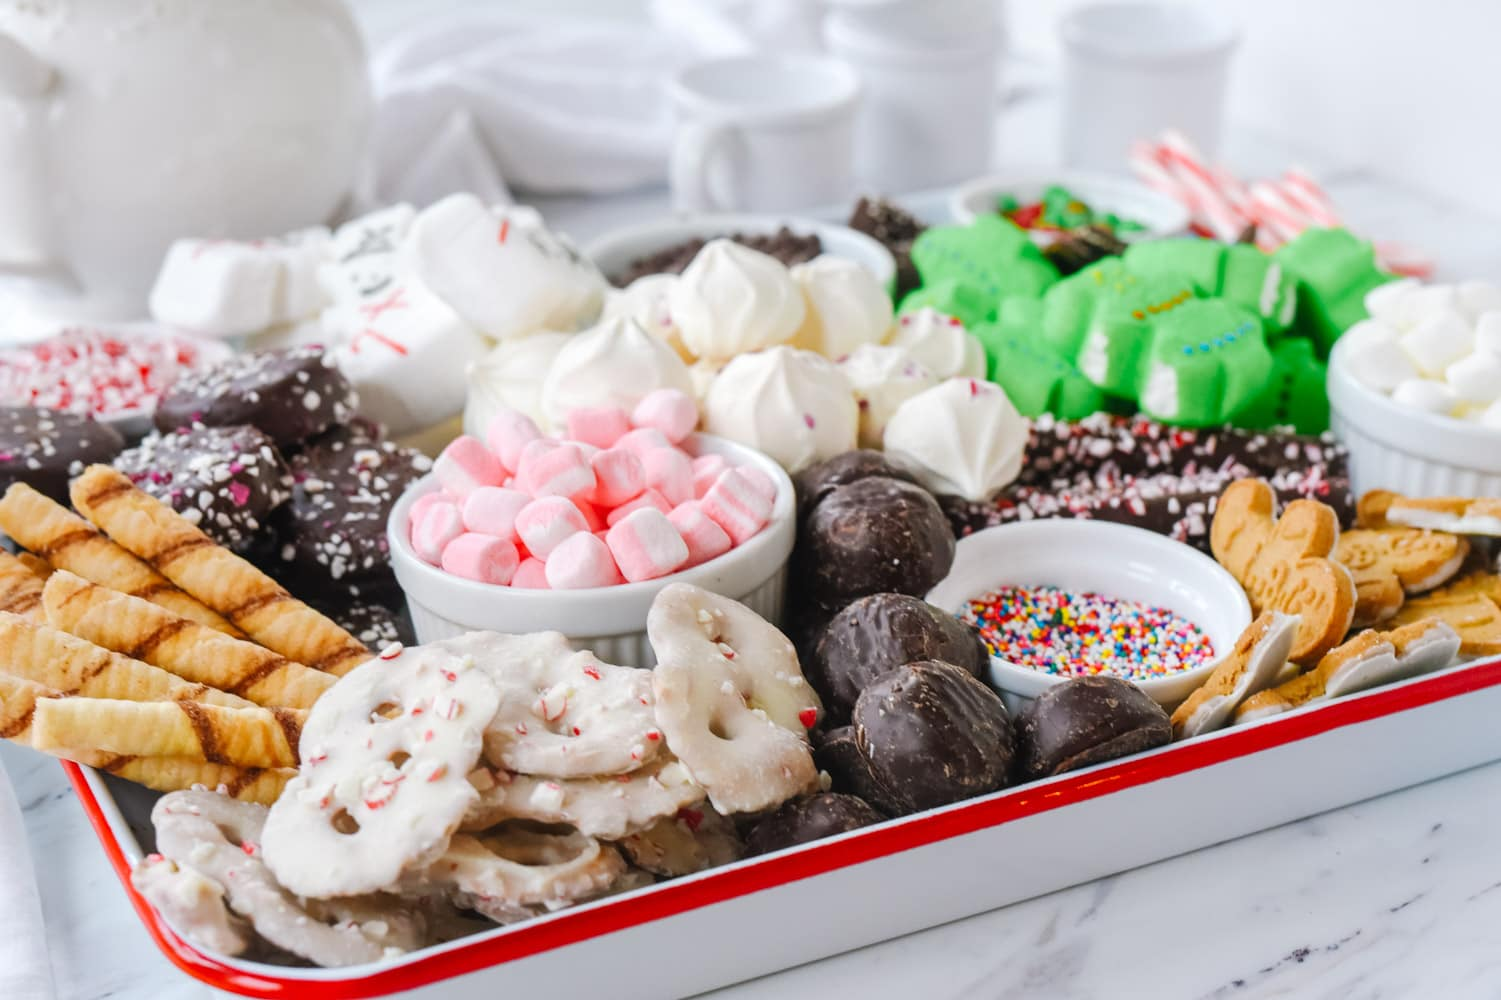 hot chocolate toppings on a tray